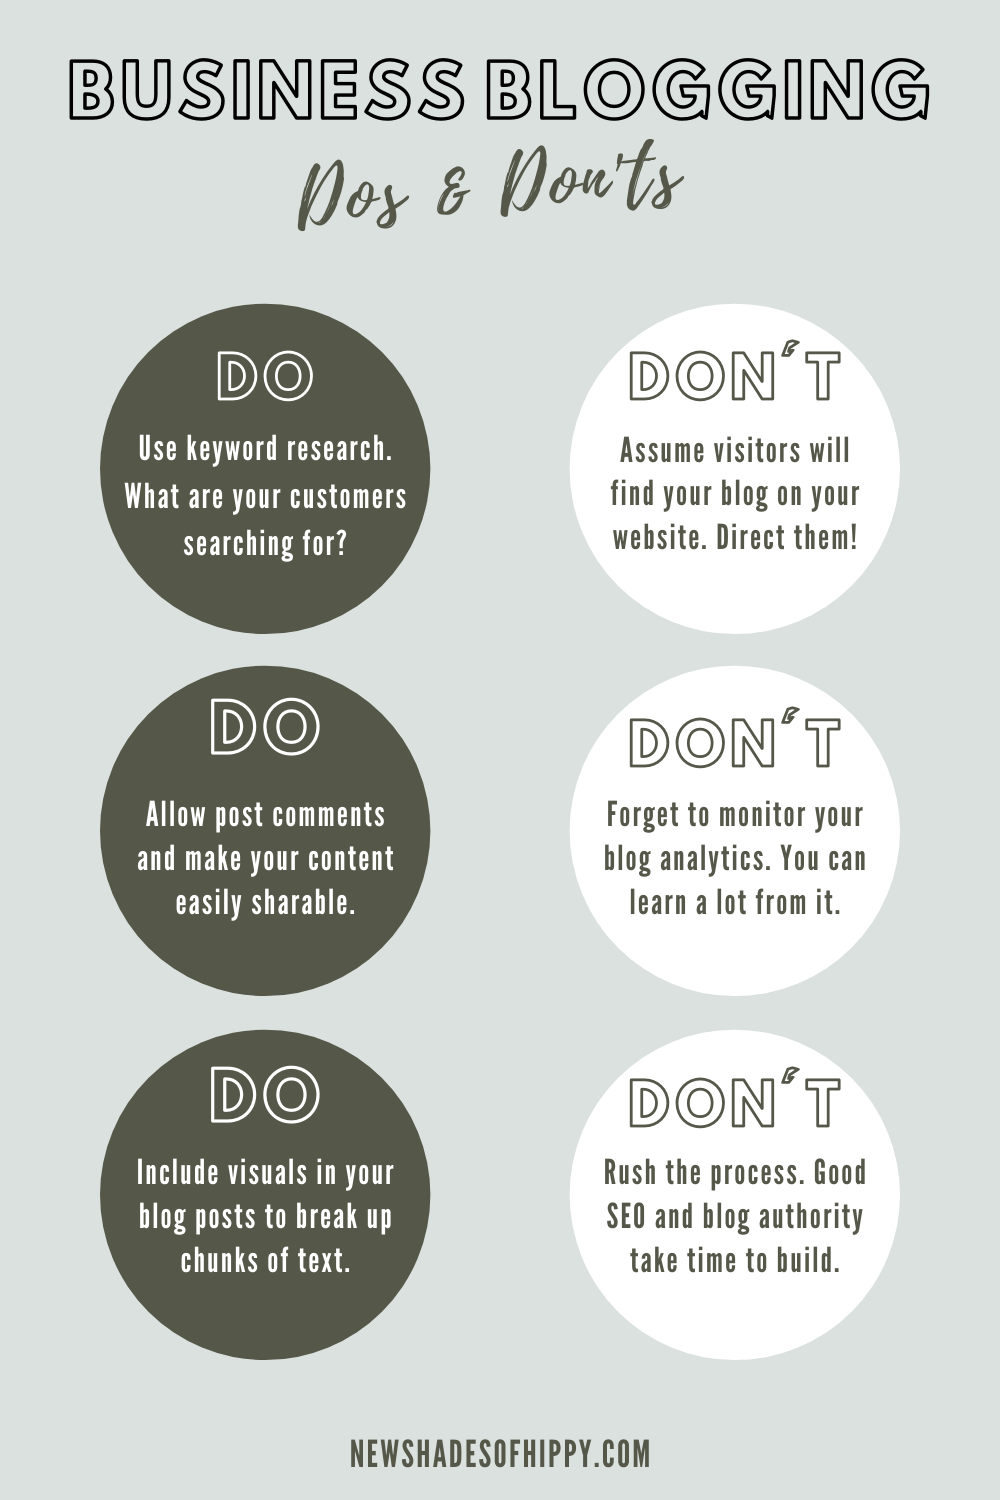 Green infographic on business blogging dos and don'ts.